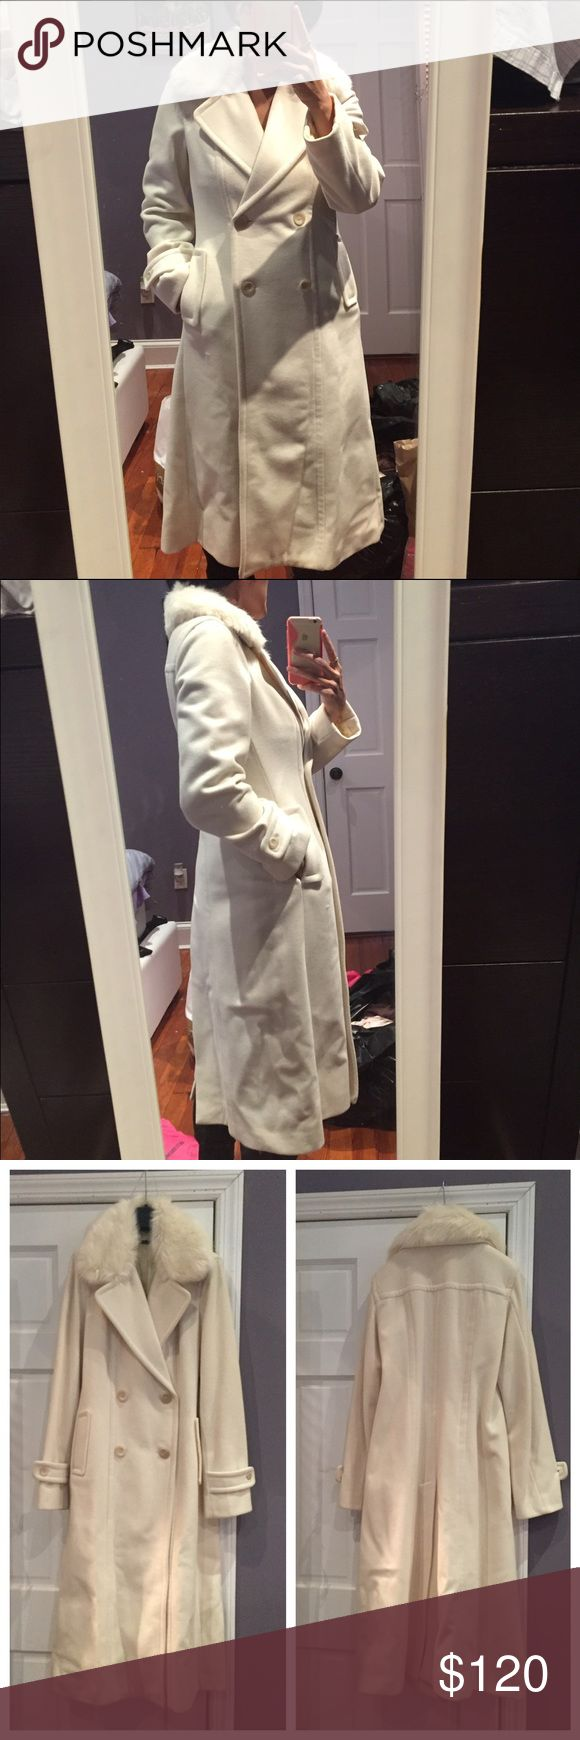 """Benetton wool coat Like new Benetton wool coat in cream color. Beautiful coat that was only worn a couple of times. Bottom needs some pressing due to storage. No rips or tears and only small spot I saw was on the front. Barely noticeable though (see pic). Detachable fur collar. Measures 44"""" in length. Size 42 but fits like an 8. United Colors Of Benetton Jackets & Coats"""